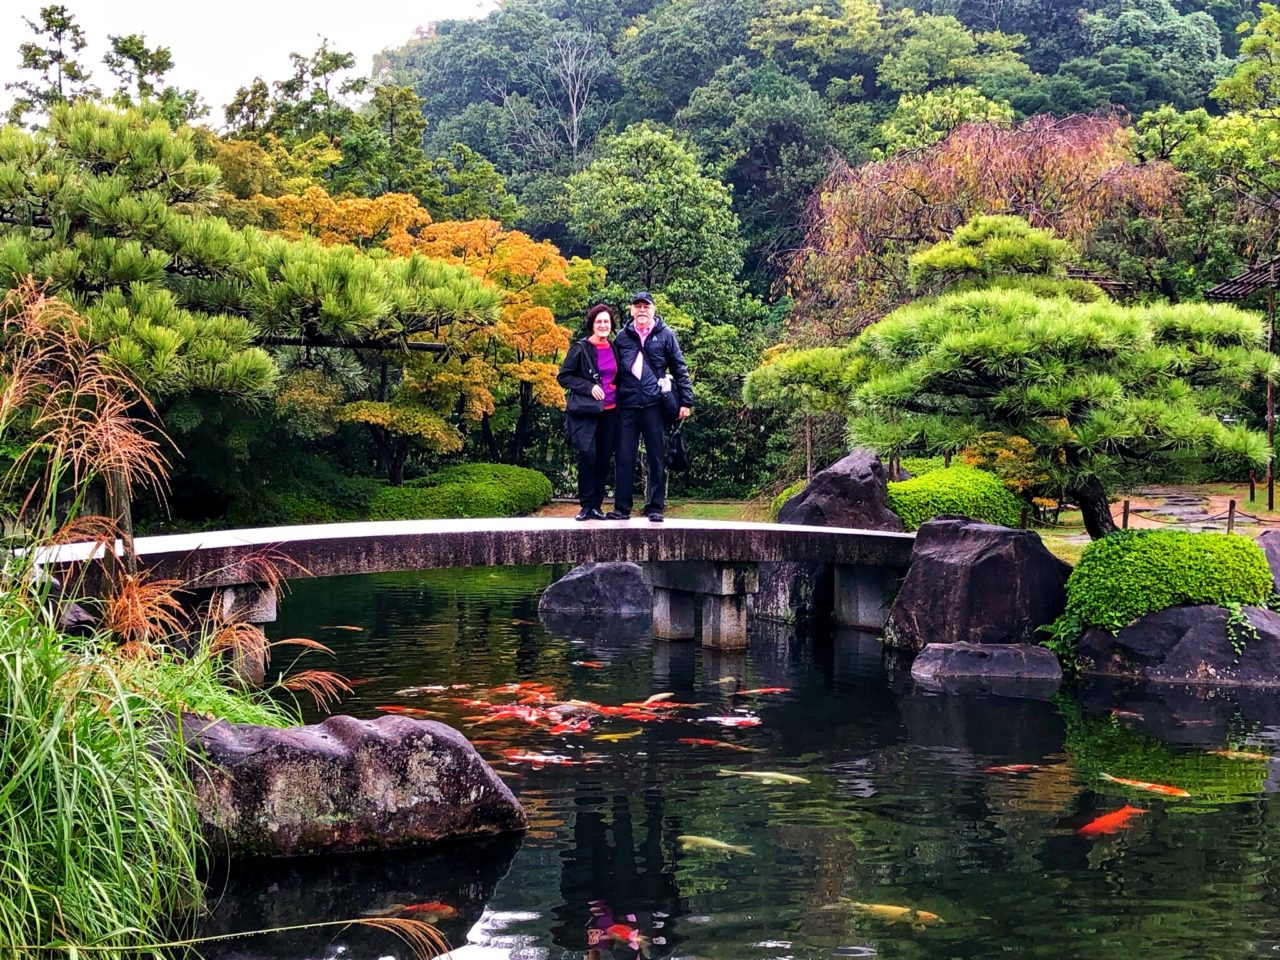 Japan Favorite Experiences ~ At Koko-en Gardens in Himeji Japan